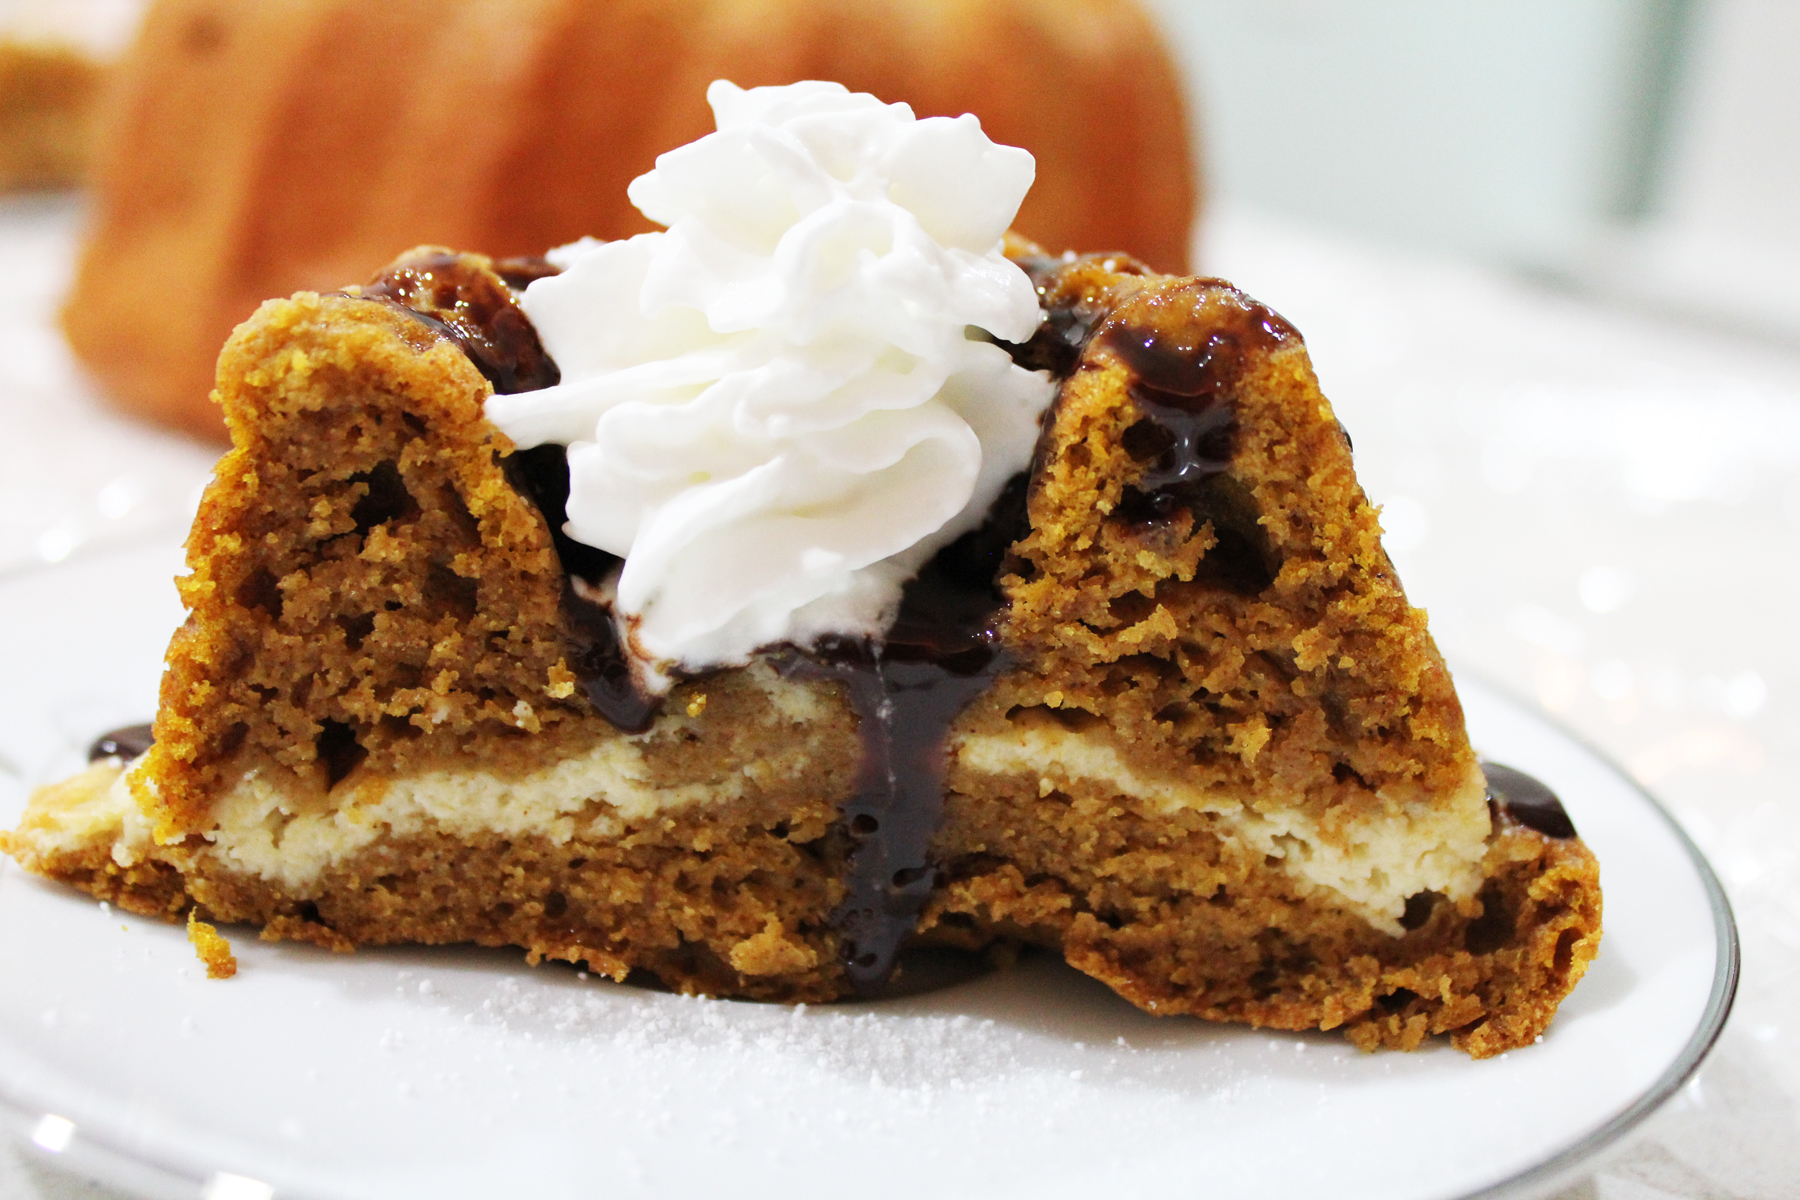 http://savvyentertaining.com/2012/10/12/pumpkin-bundt-cake-with-cream-cheese-filling/